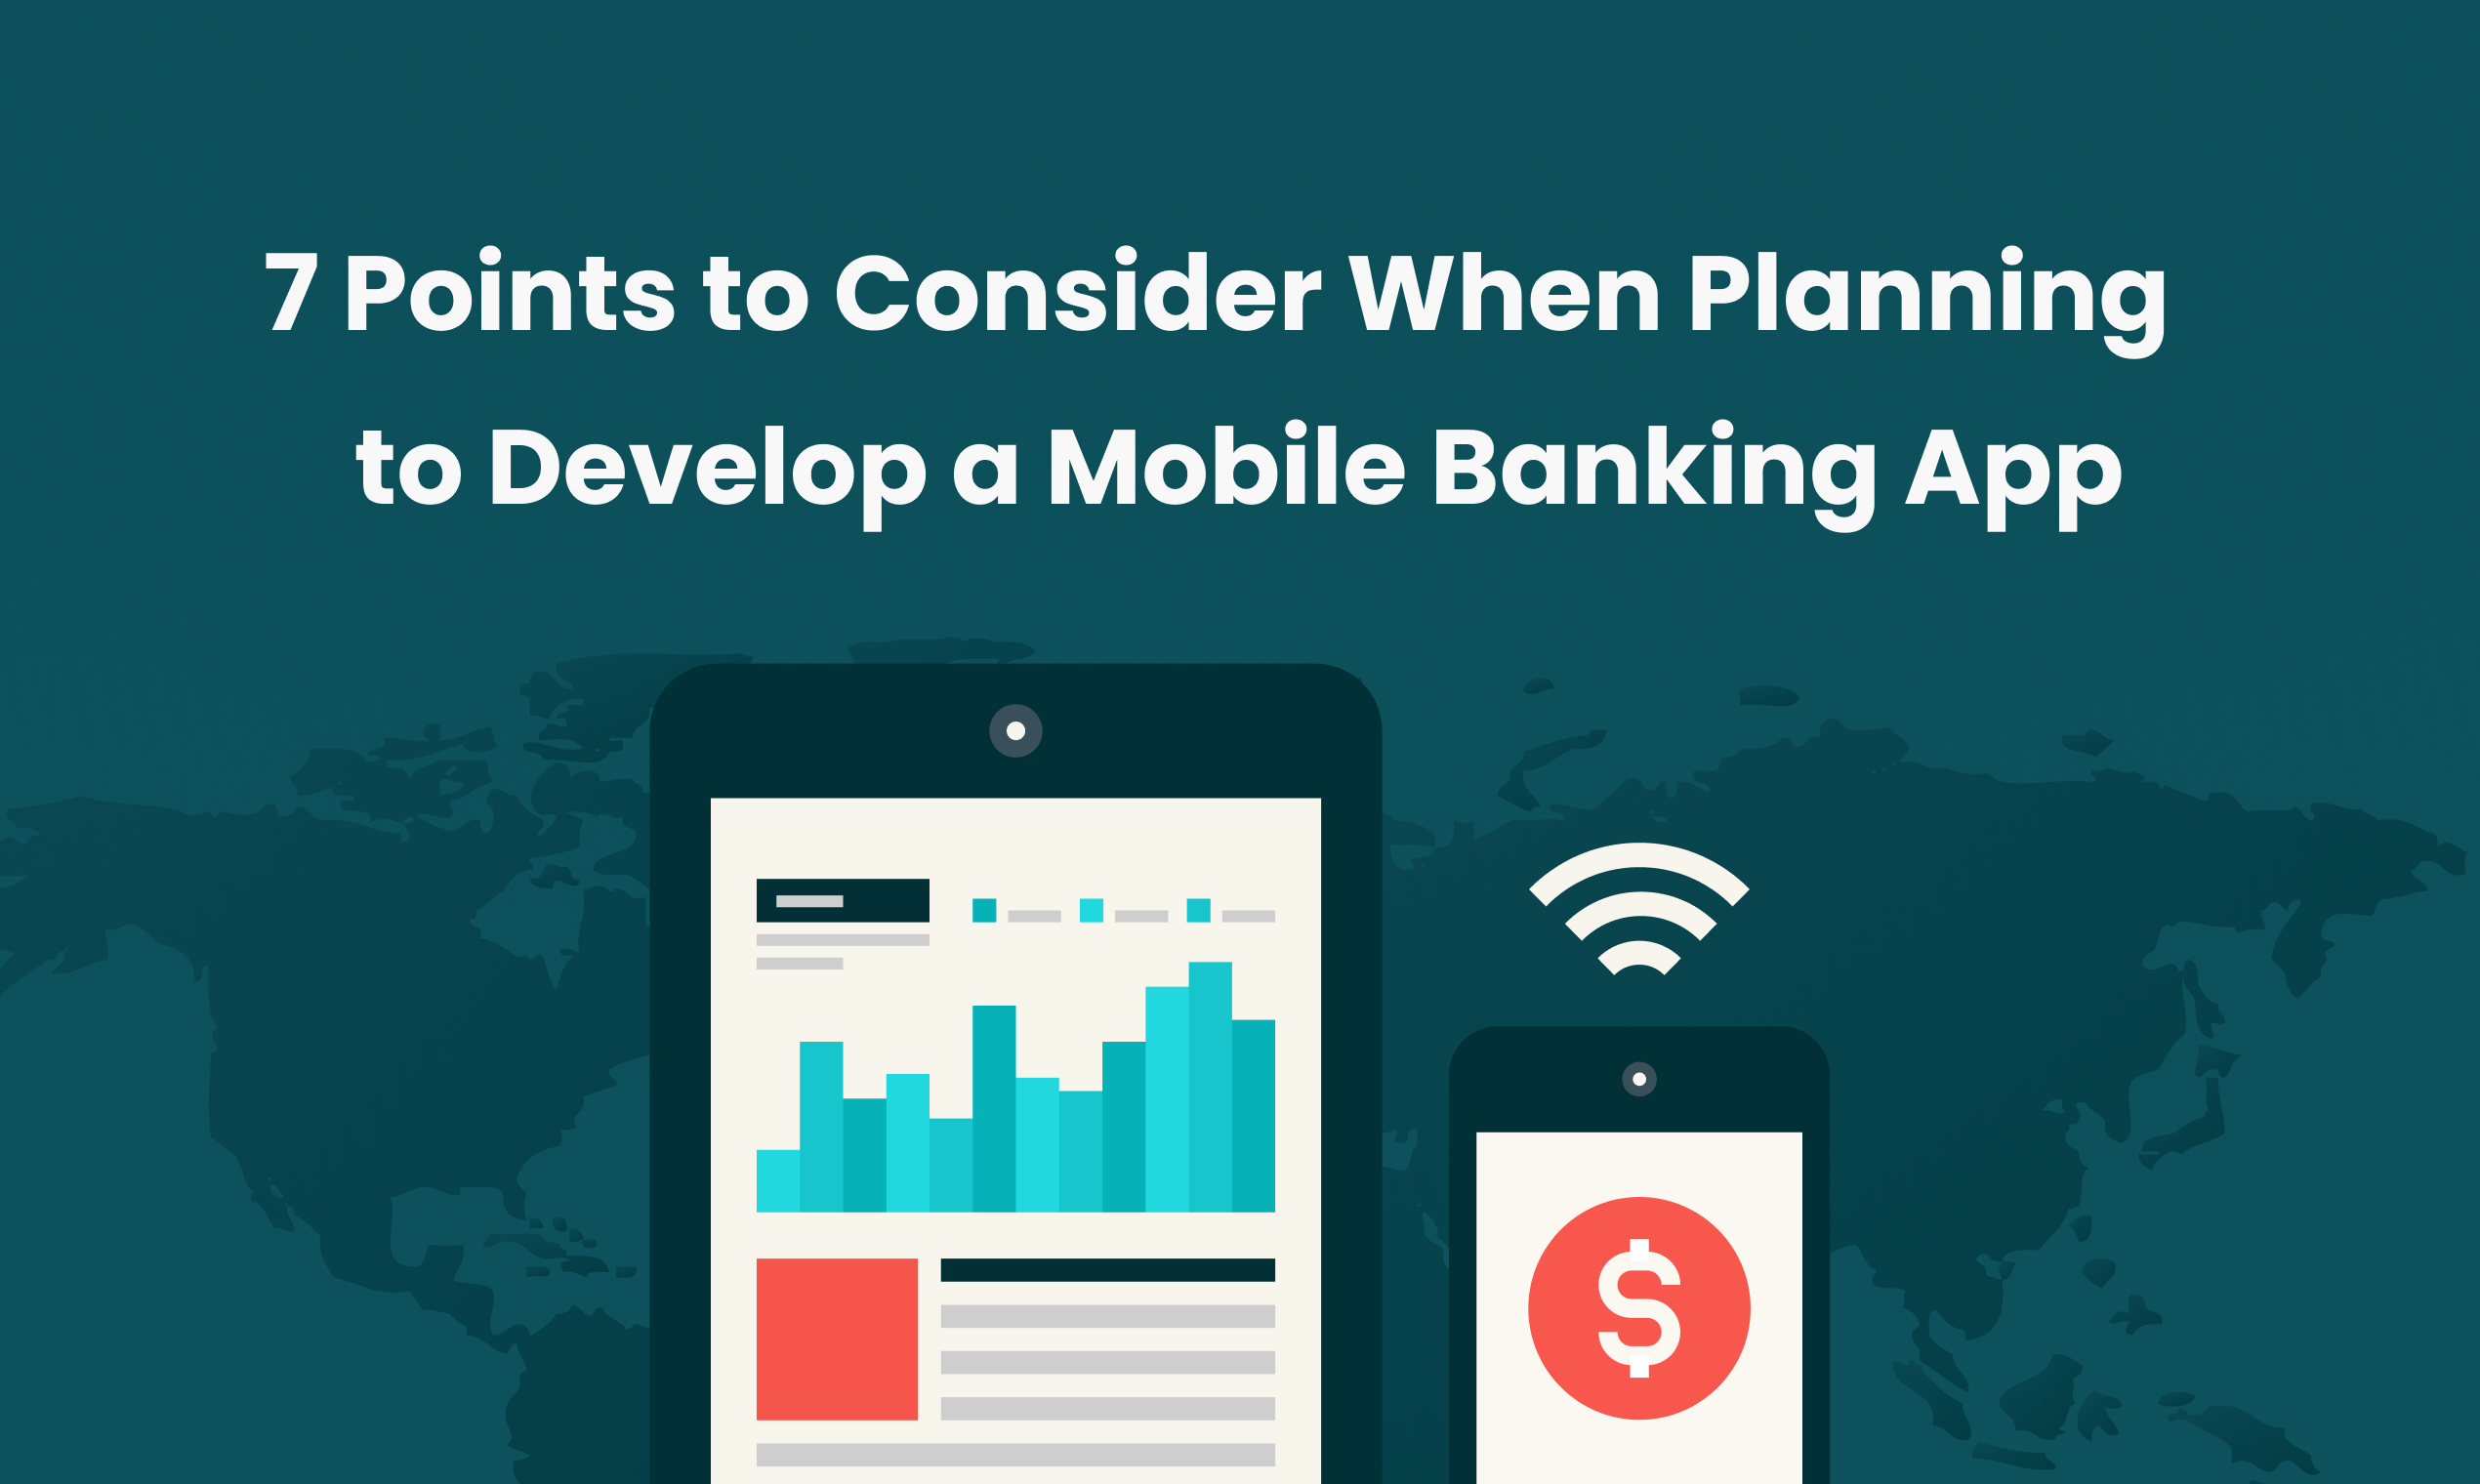 7 Points to consider when planning  to develop a mobile banking app (video)